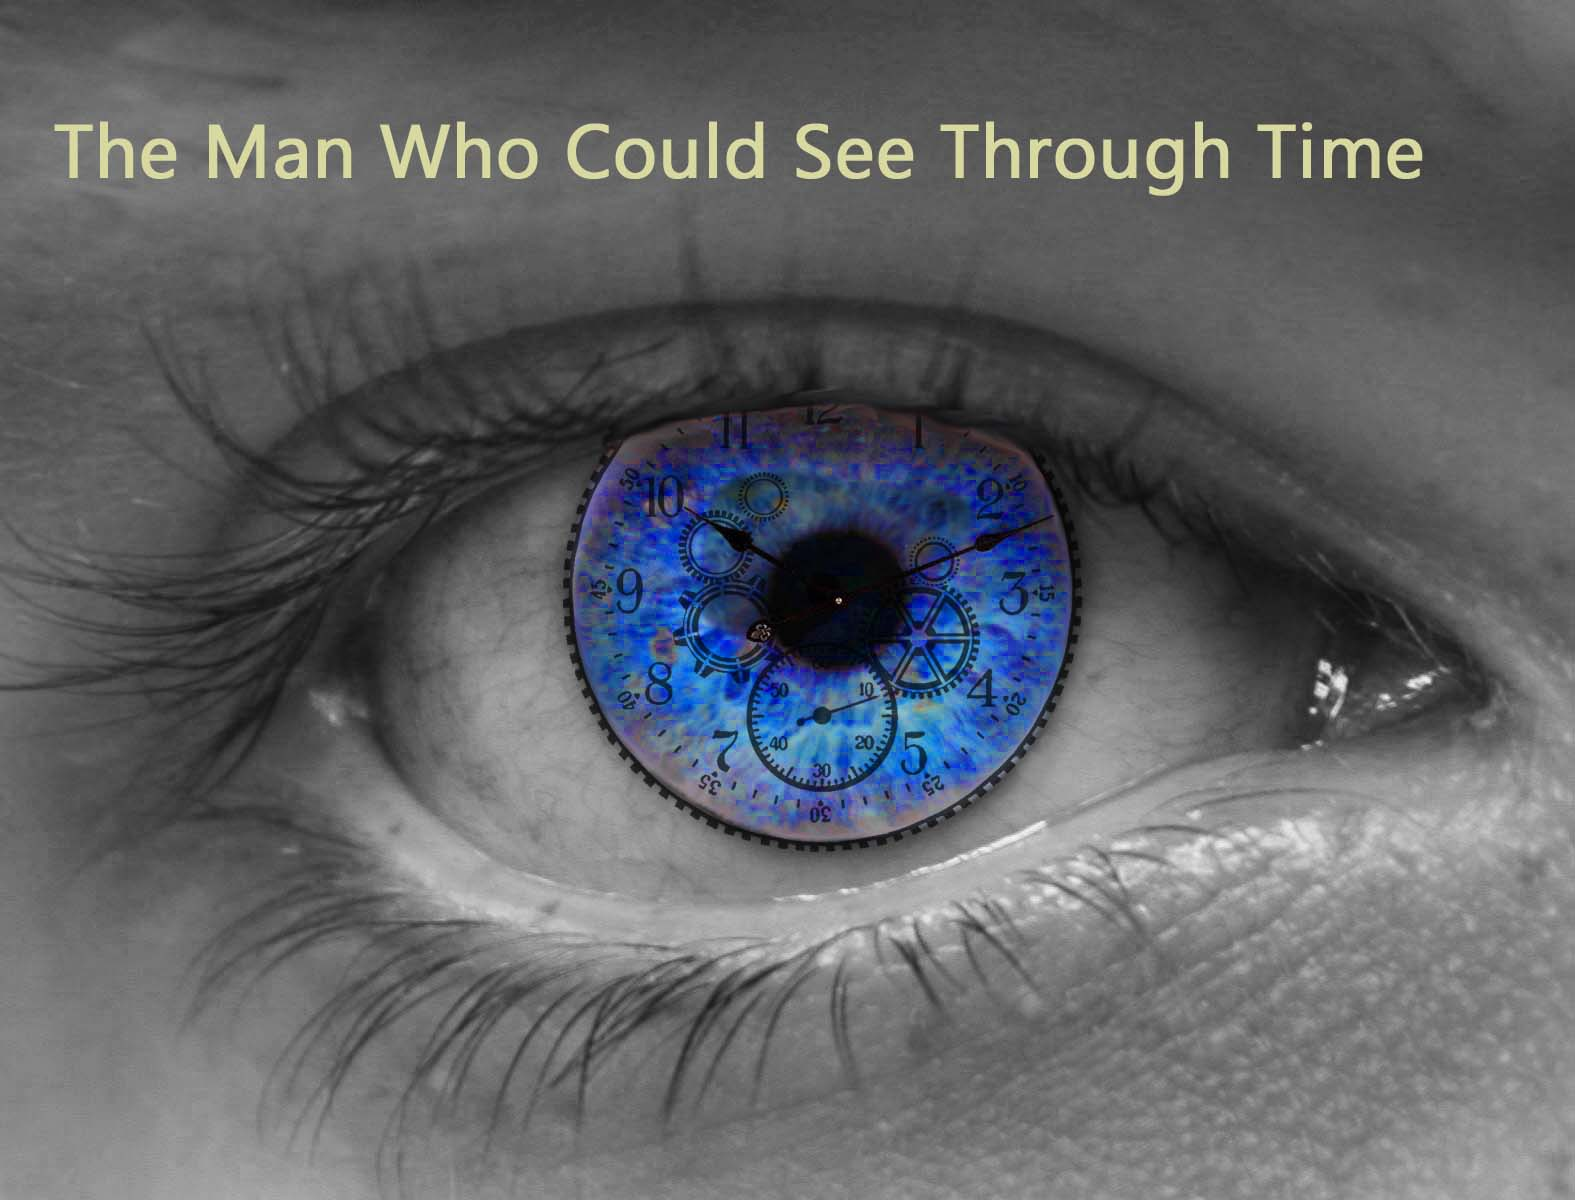 a1f2322617e The Man Who Could See Through Time – The Nutz-n-Boltz Theater Company